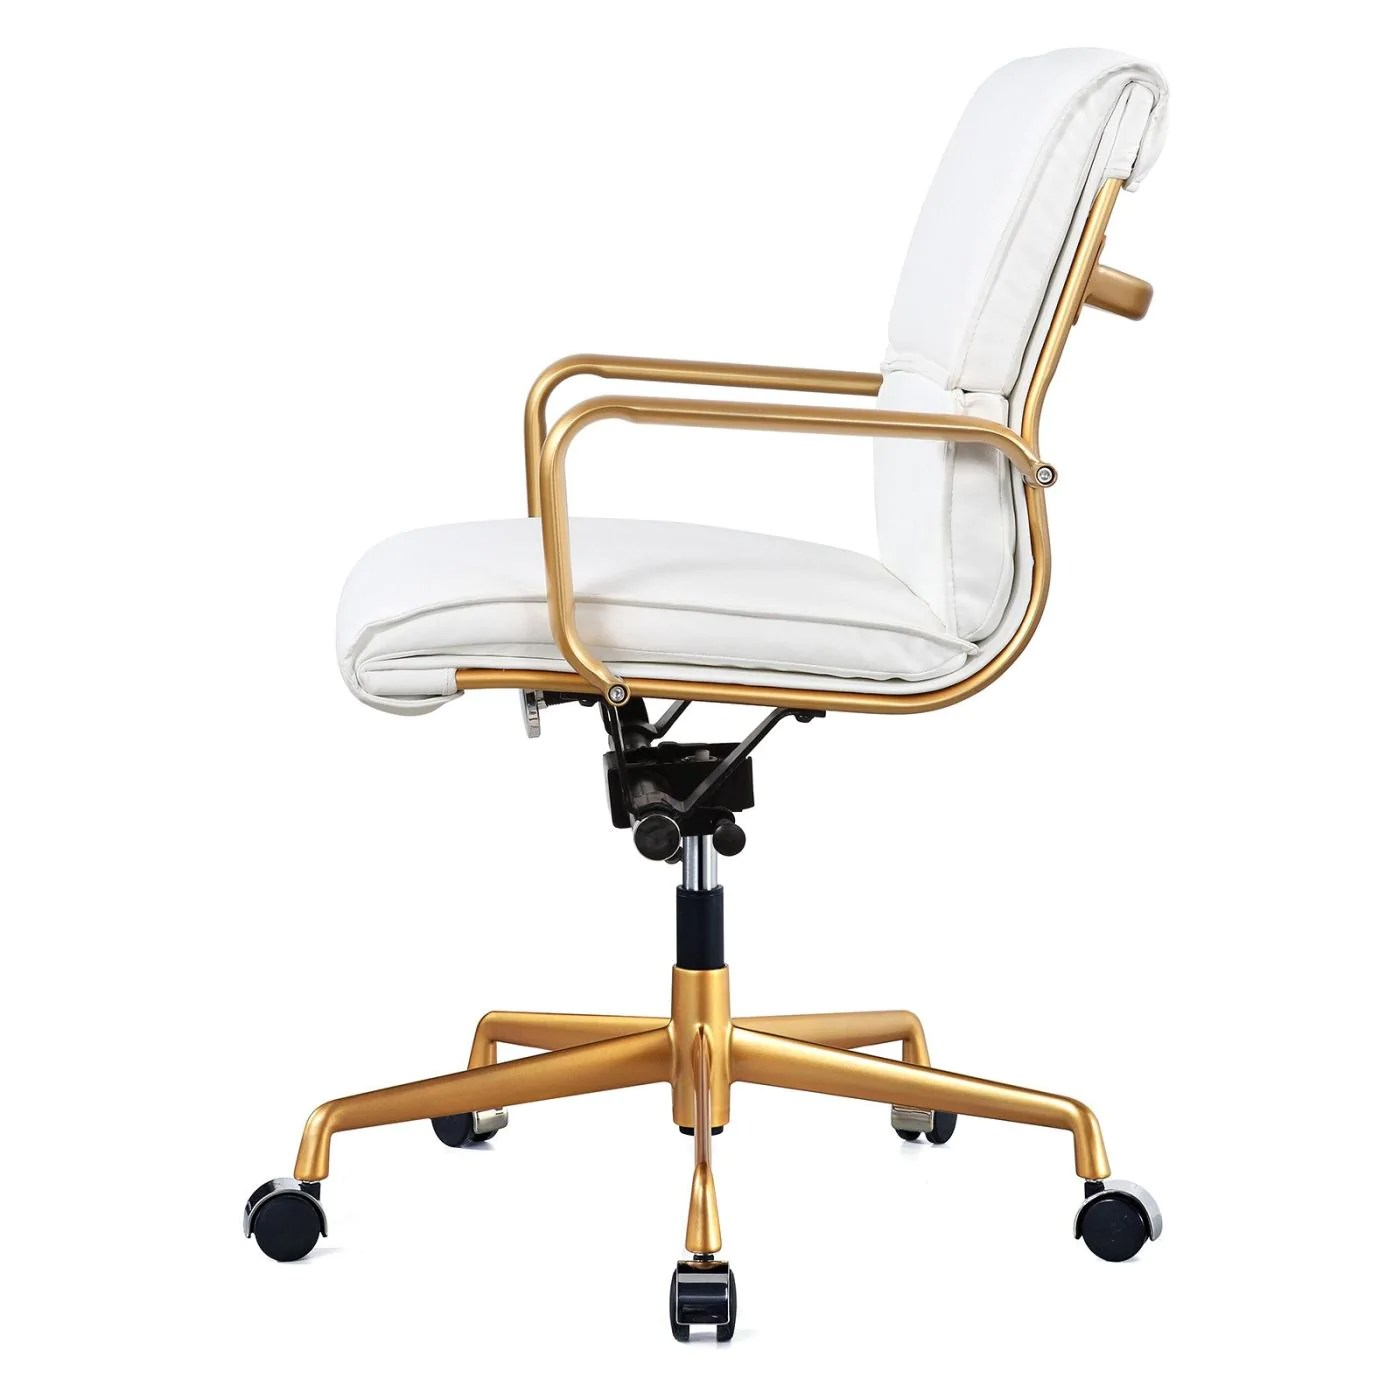 White And Gold Desk Chair Meelano 330 Gd Whi Office Chair In Gold And White Vegan